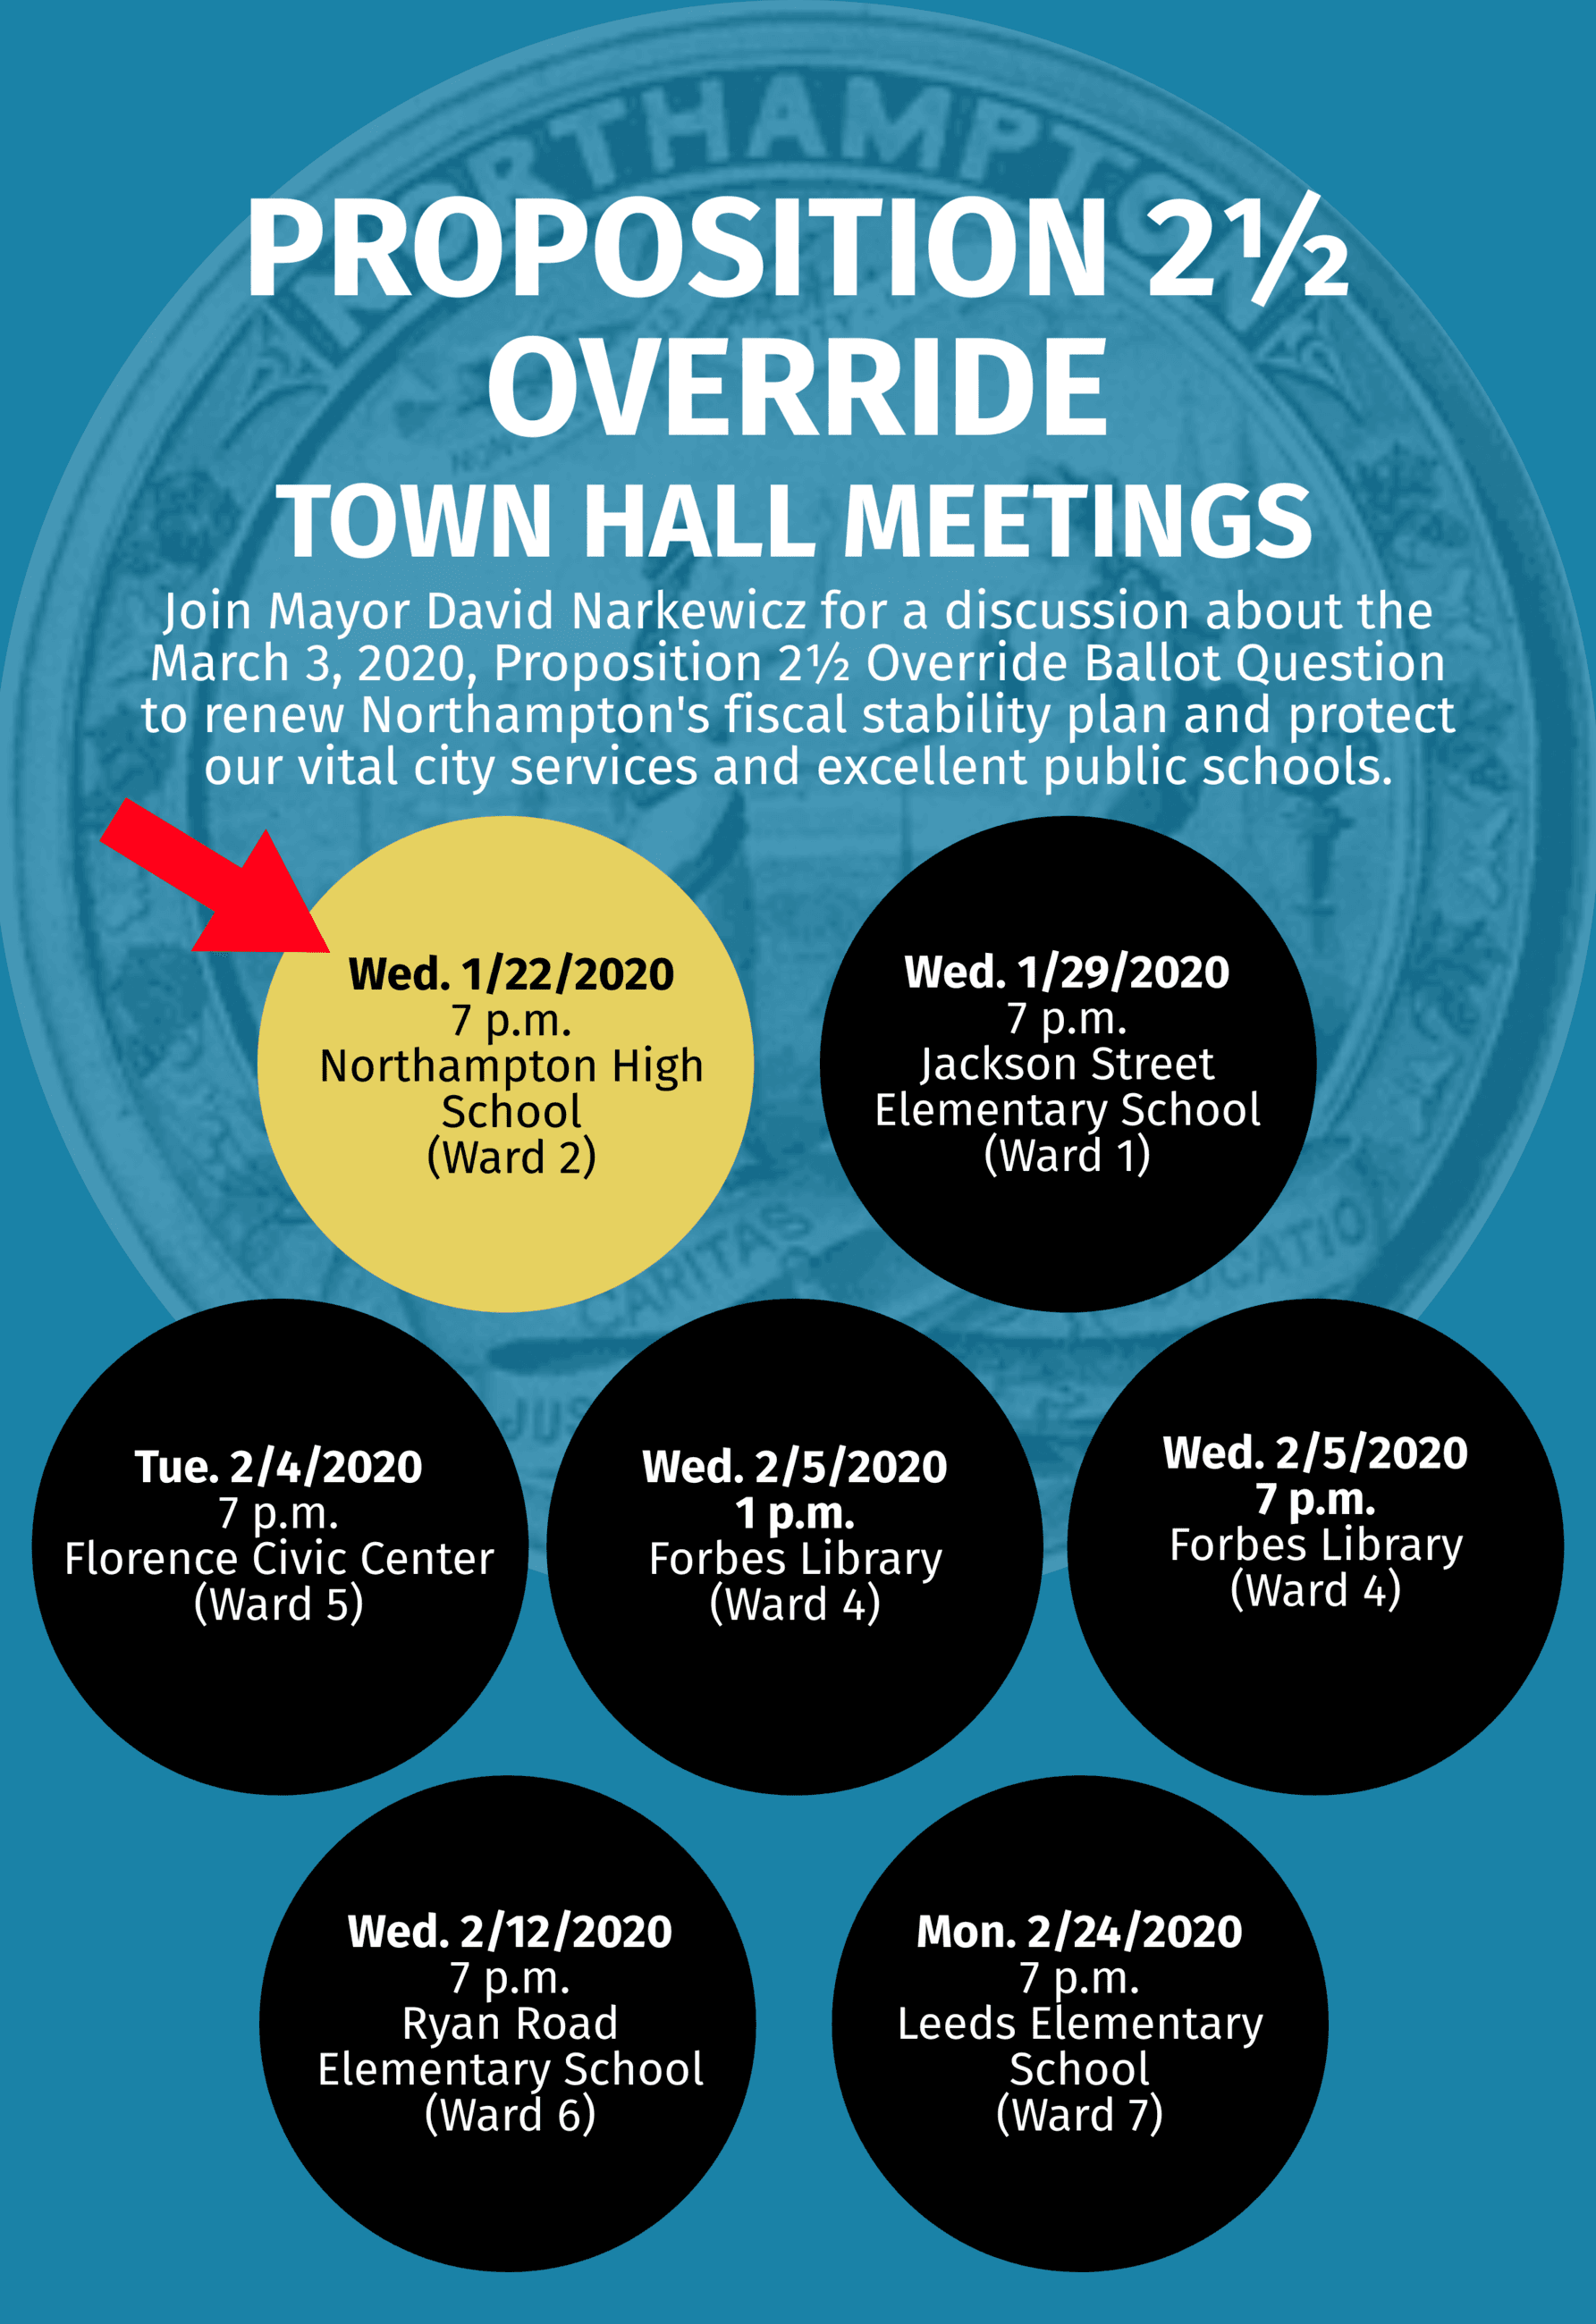 Image of Proposition 2.5 Town Hall Meetings Flyer